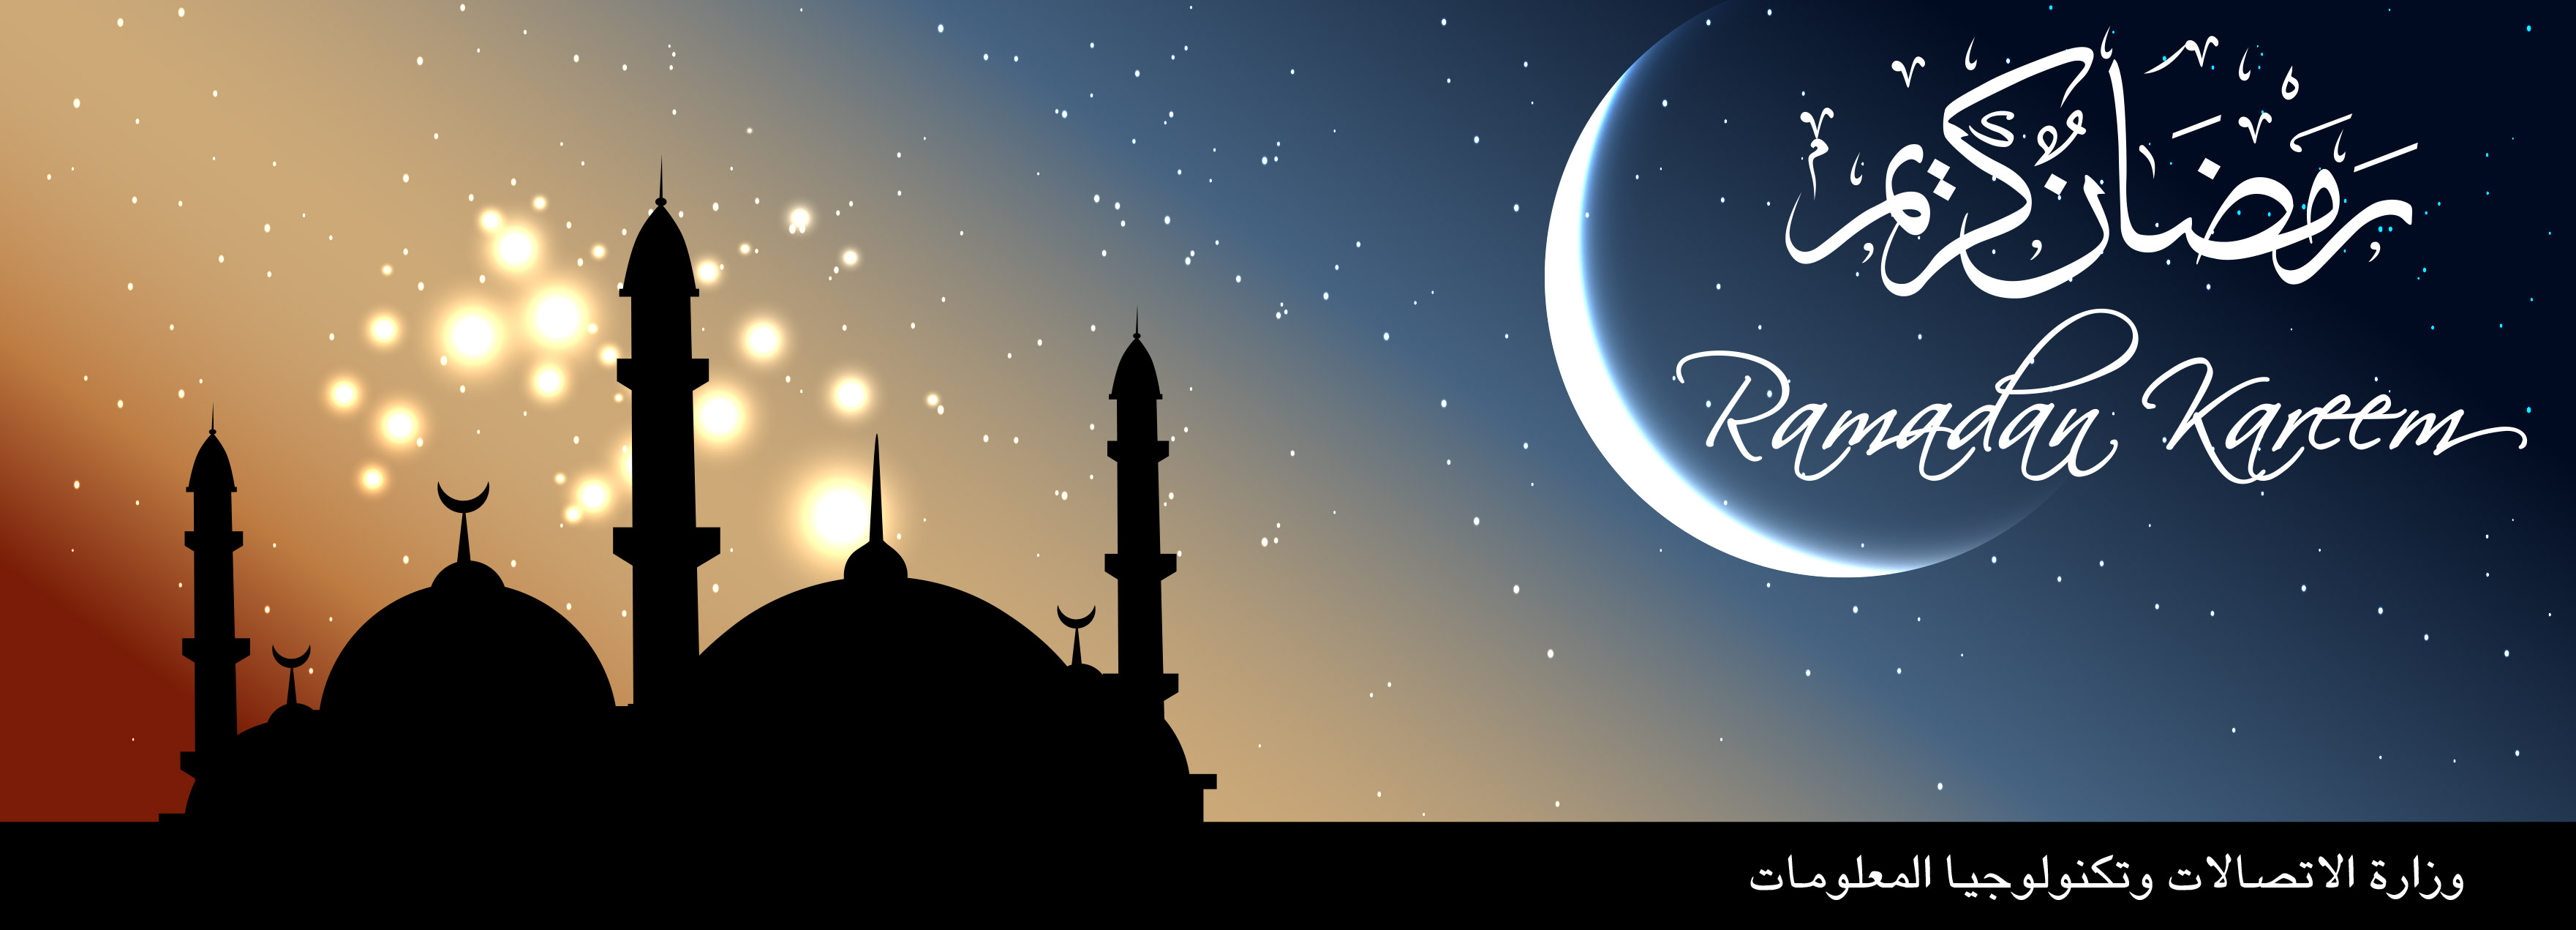 Report More Positivity In Social Media Behaviors During Ramadan